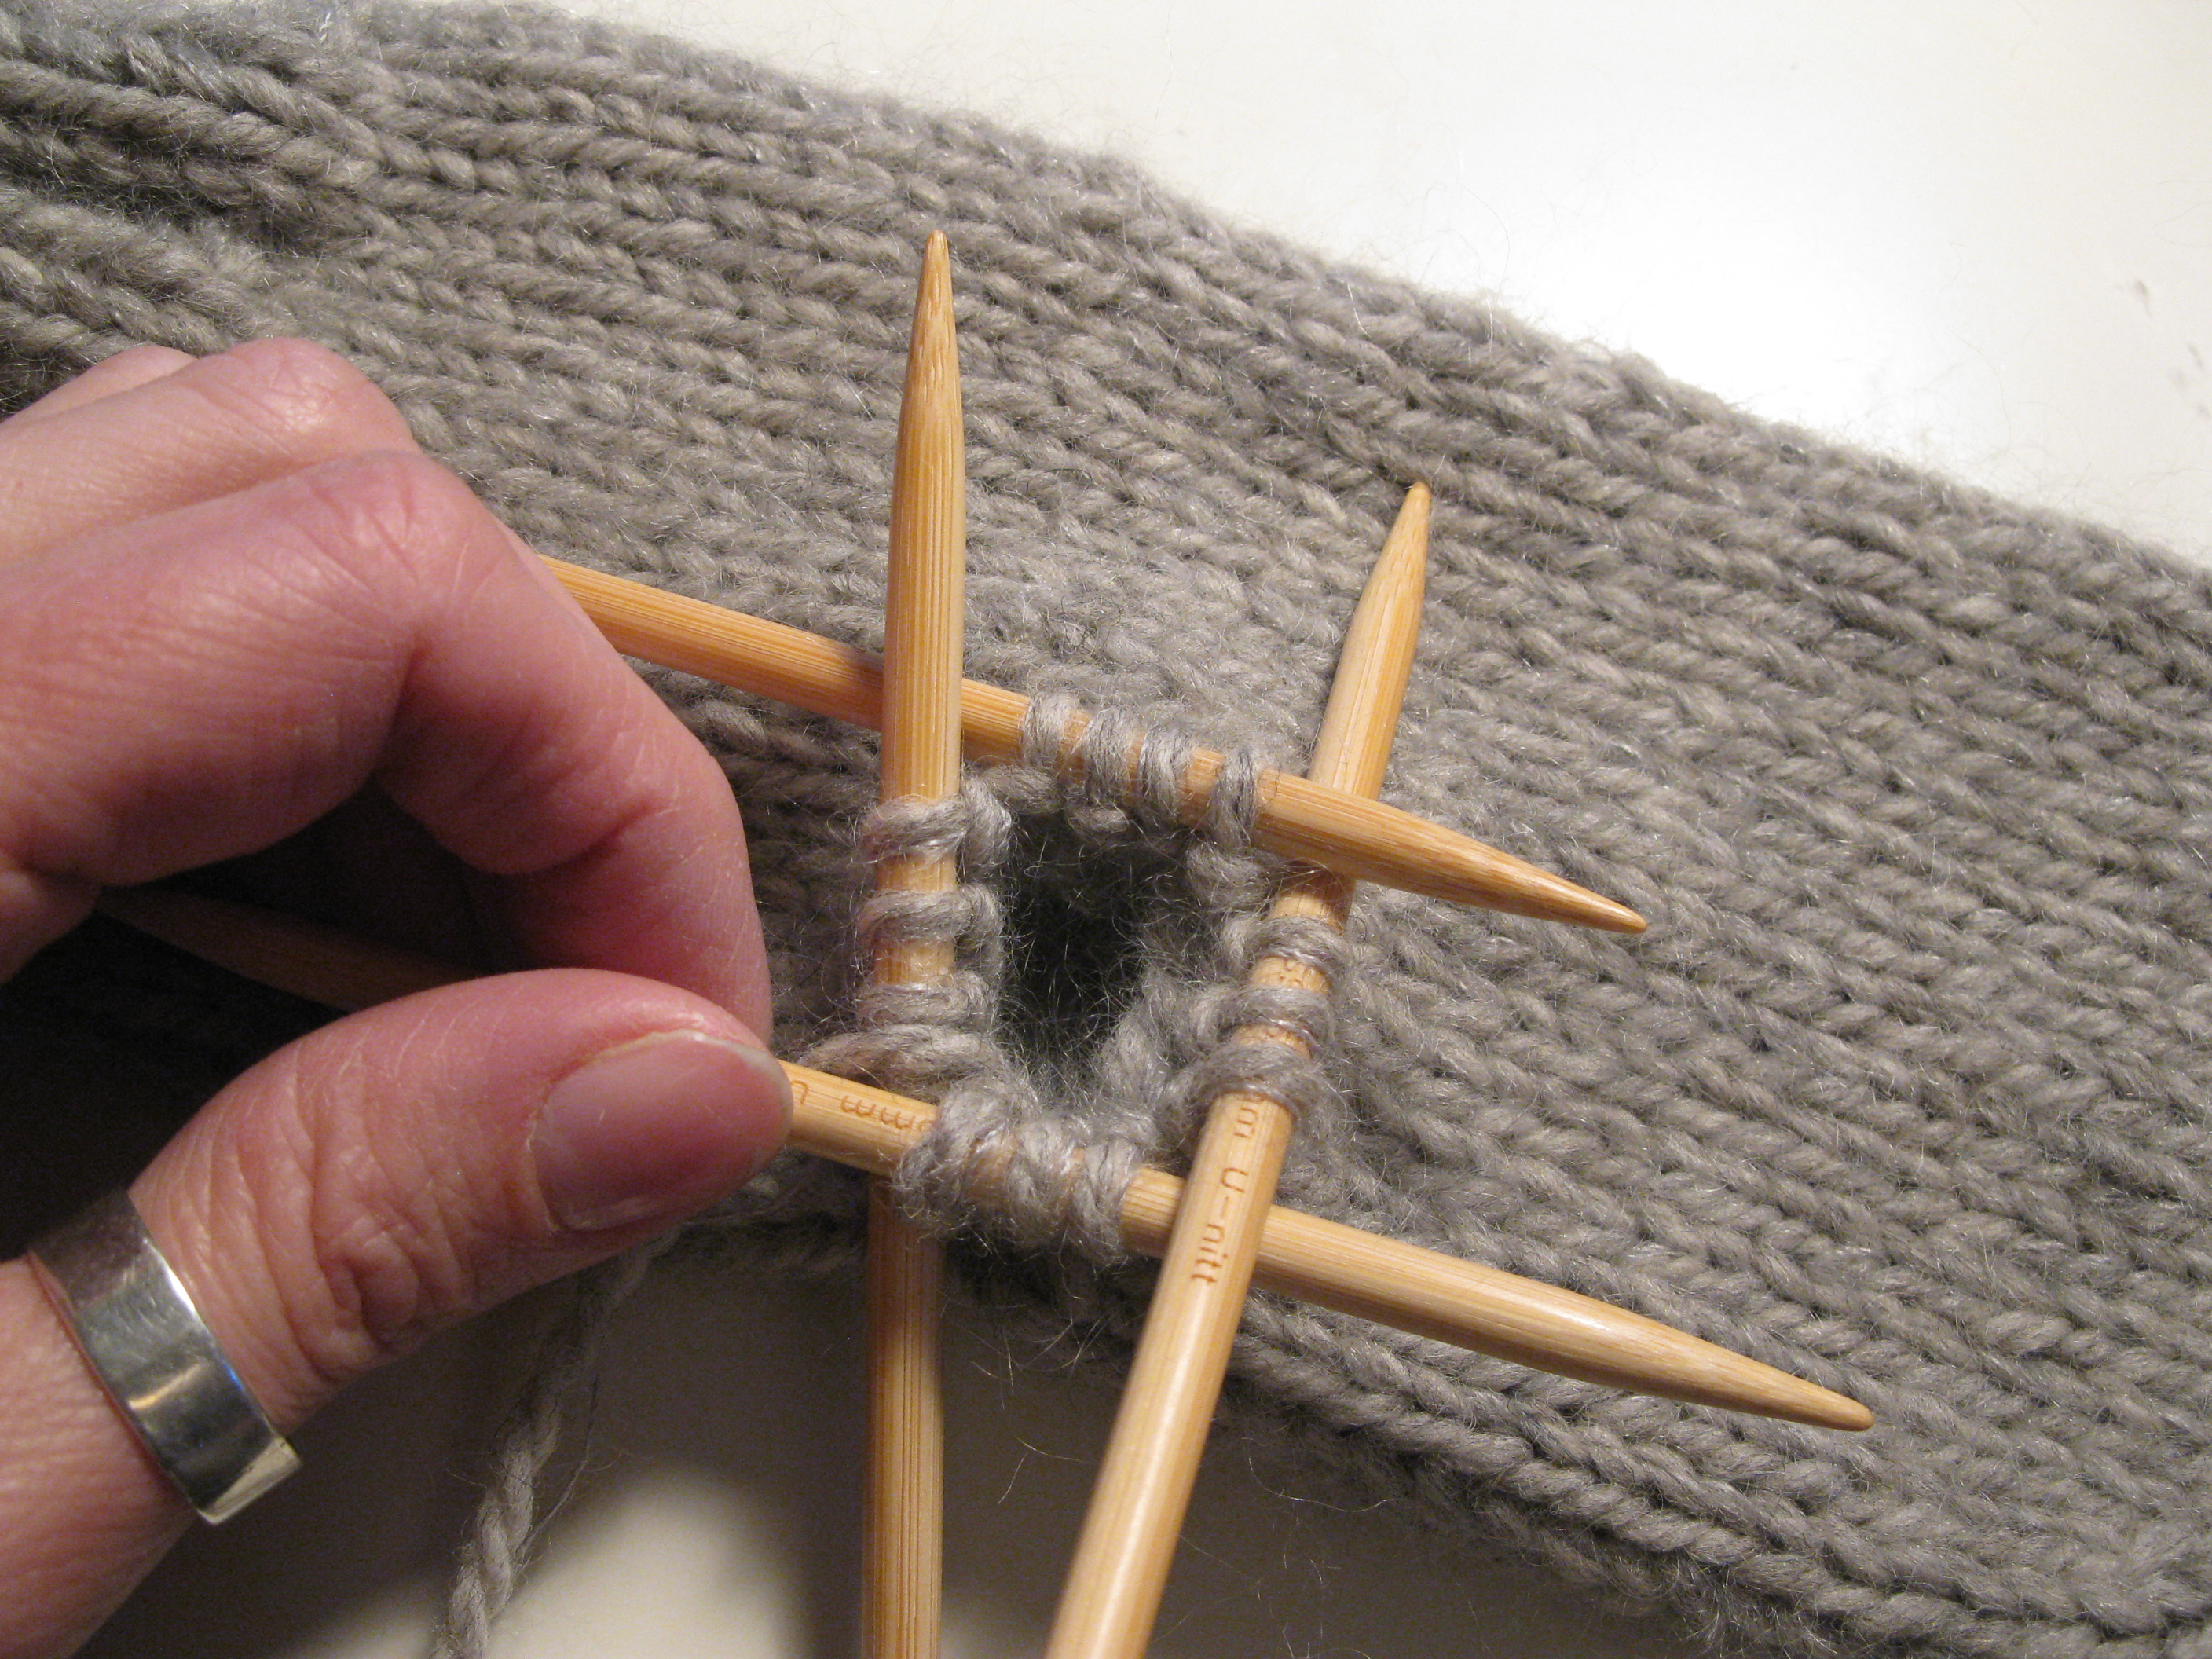 Knitting Joining Yarn In The Round : How to knit a basic mitten part espace tricot